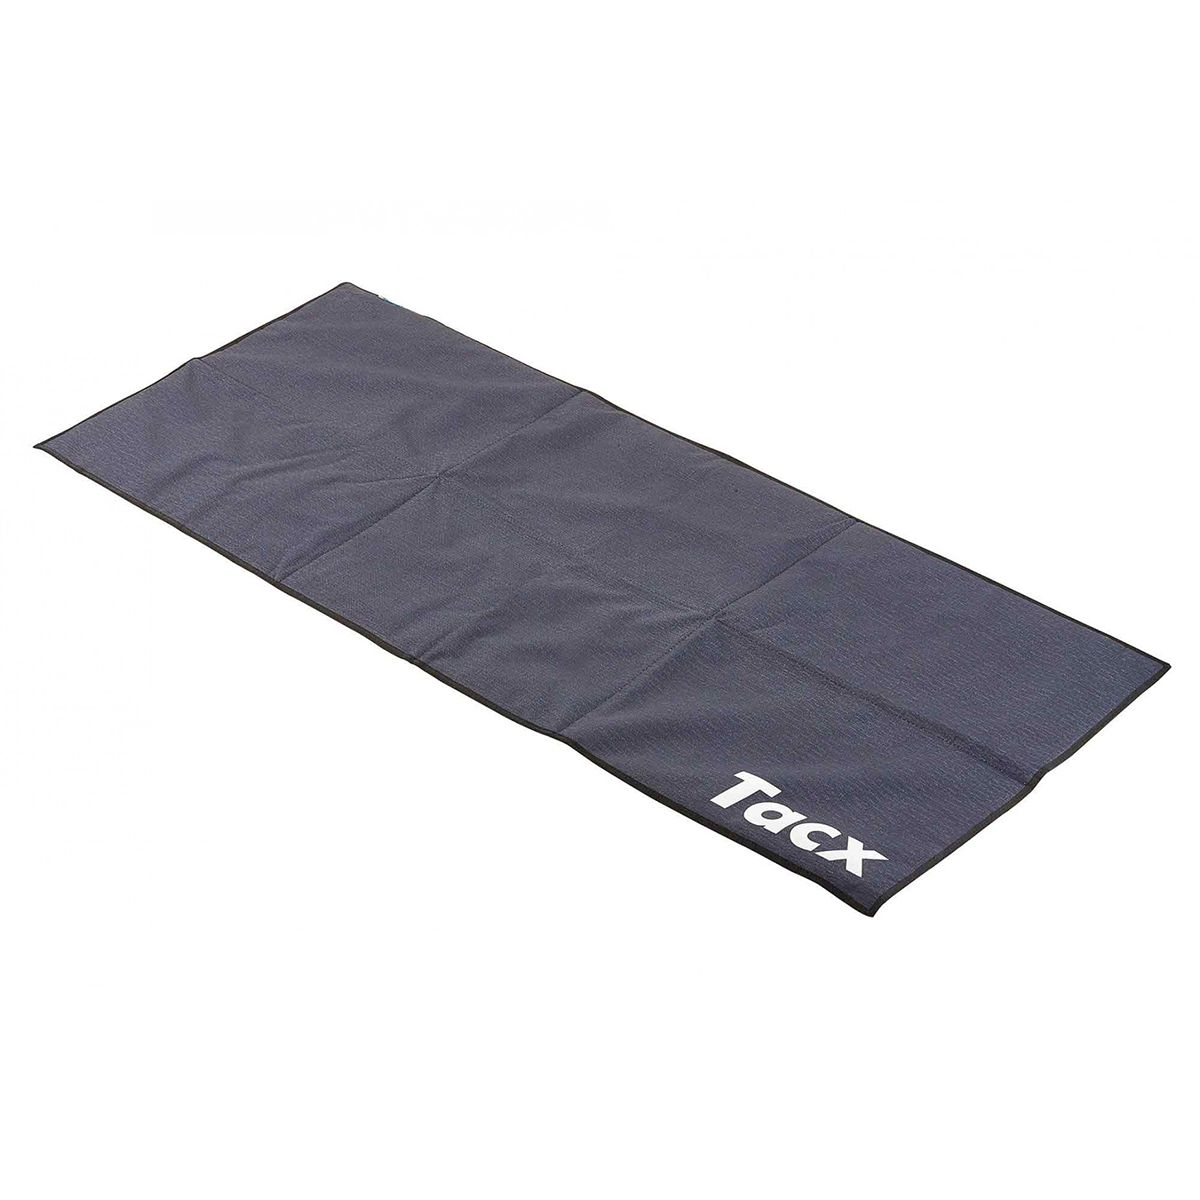 T2910 training mat